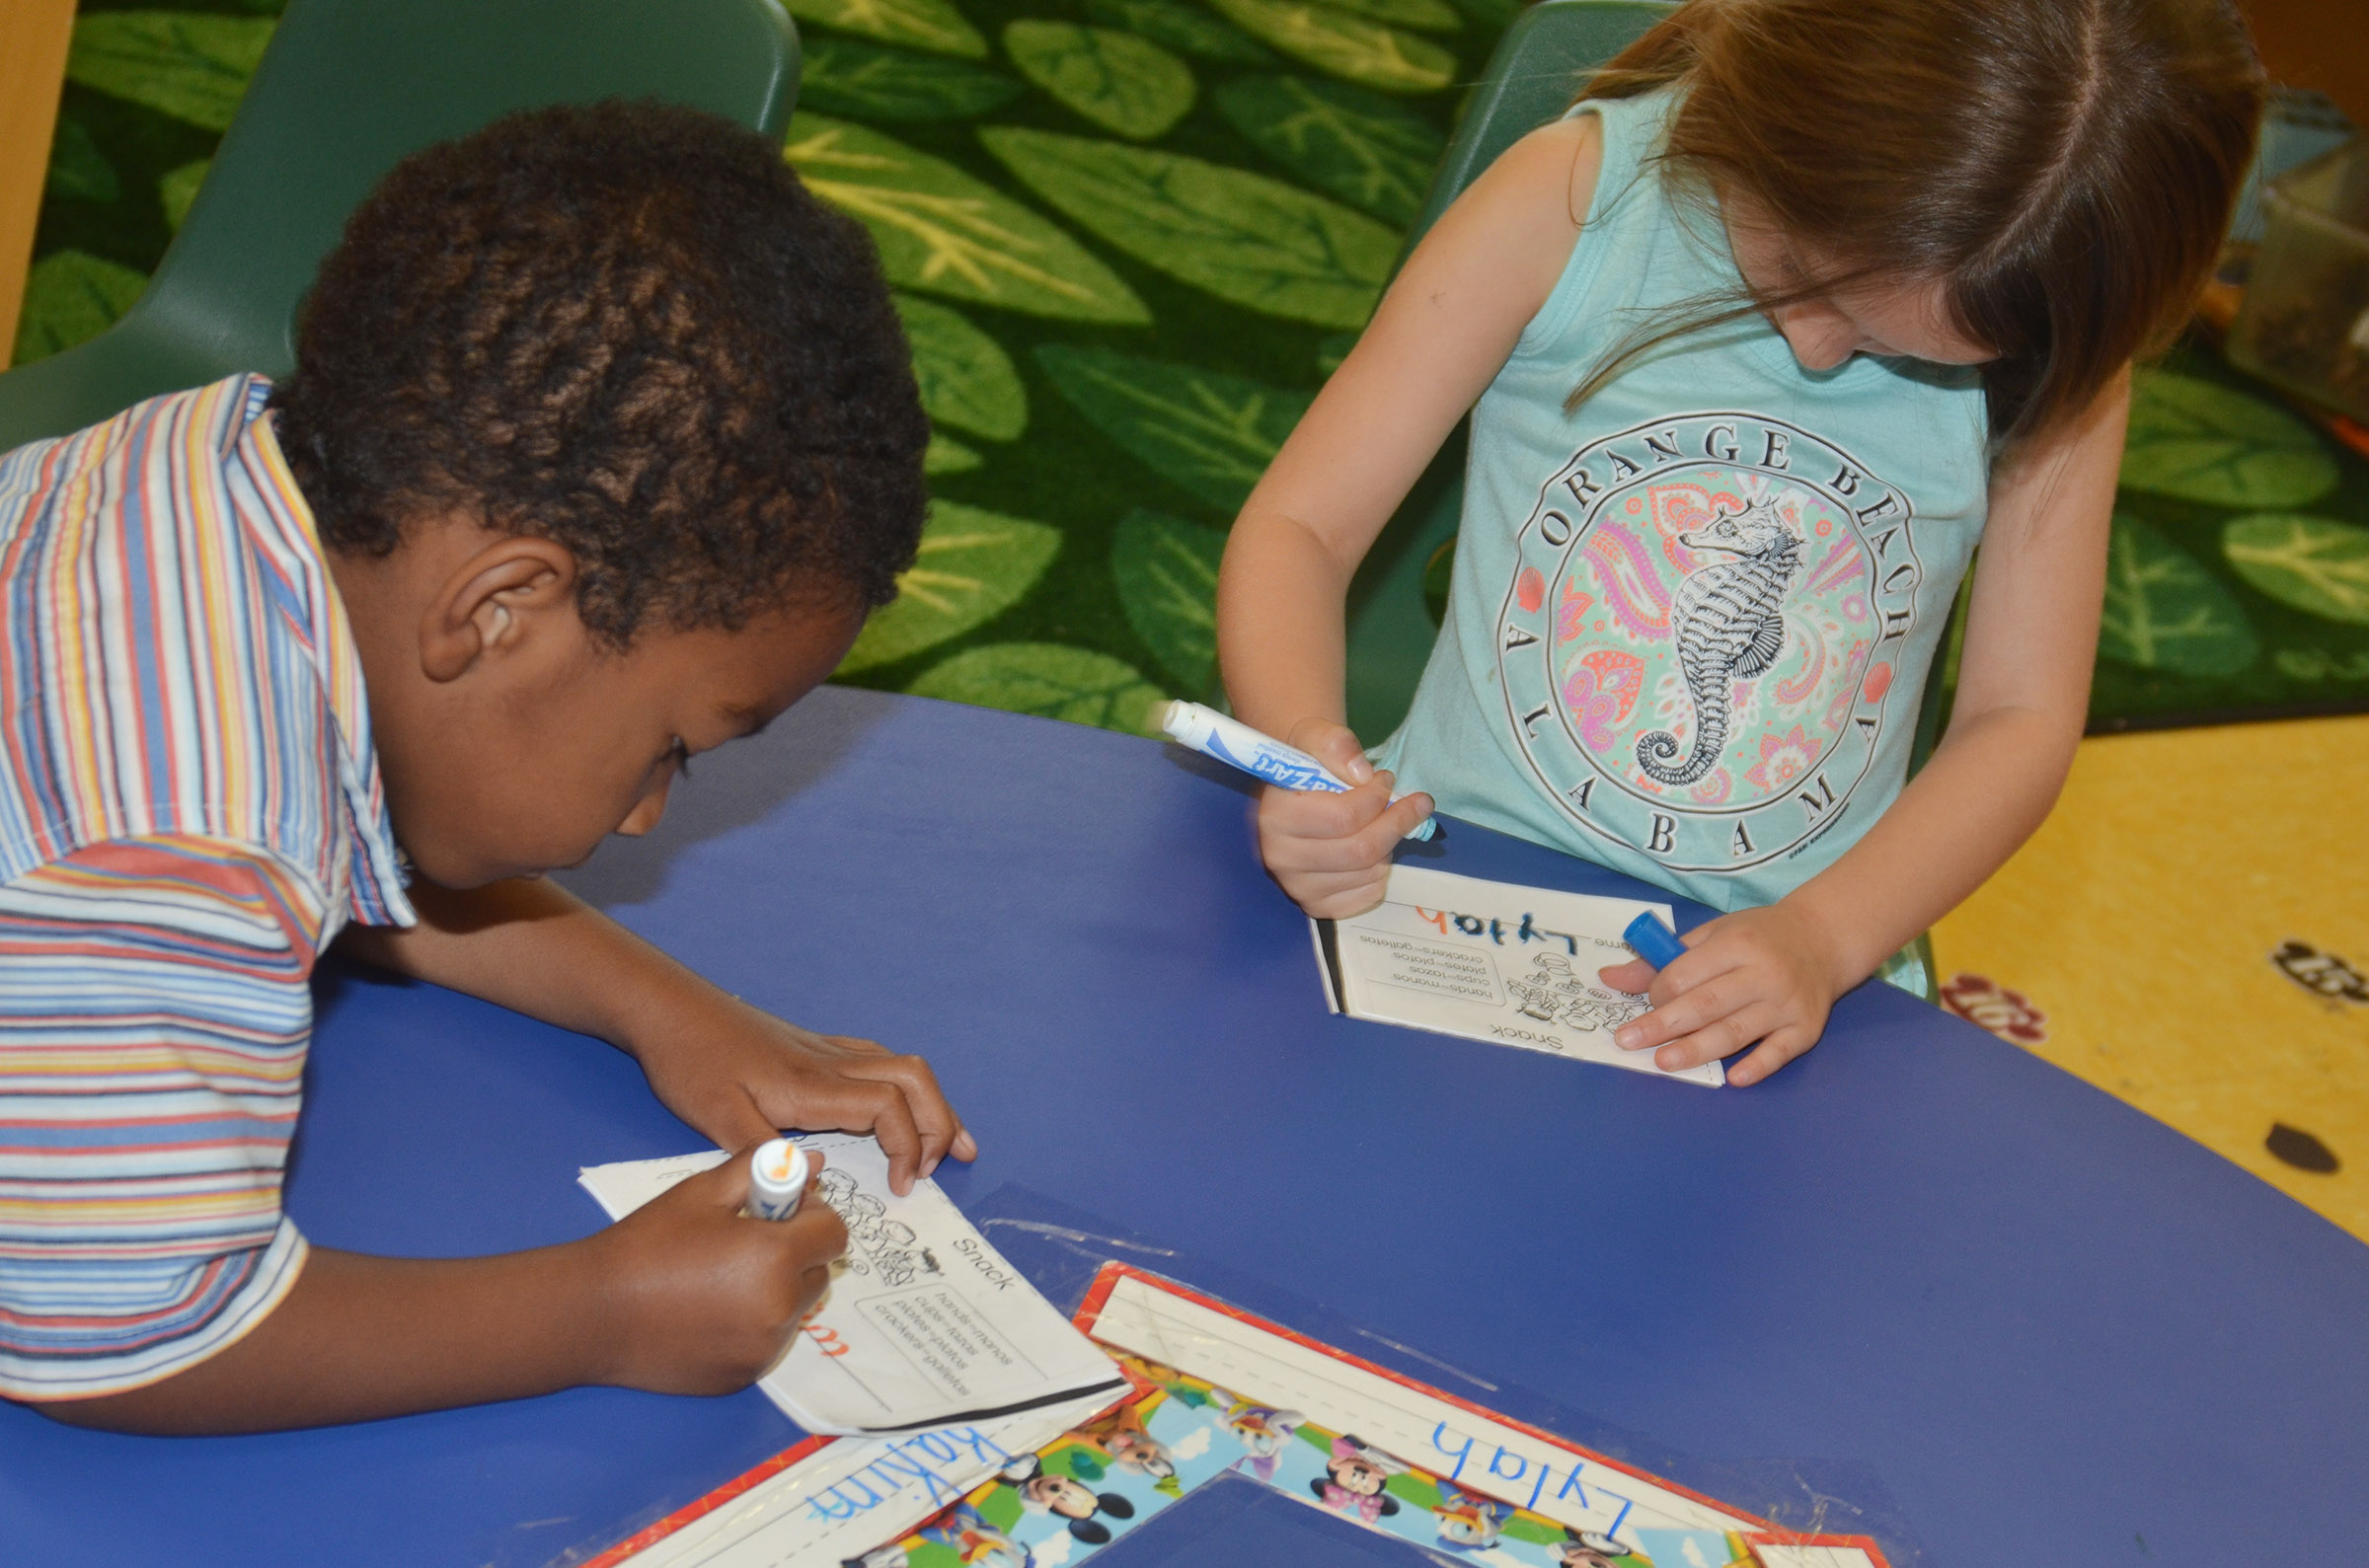 CES preschool students Rakim Dunn, at left, and Lylah Davis practice writing their names.